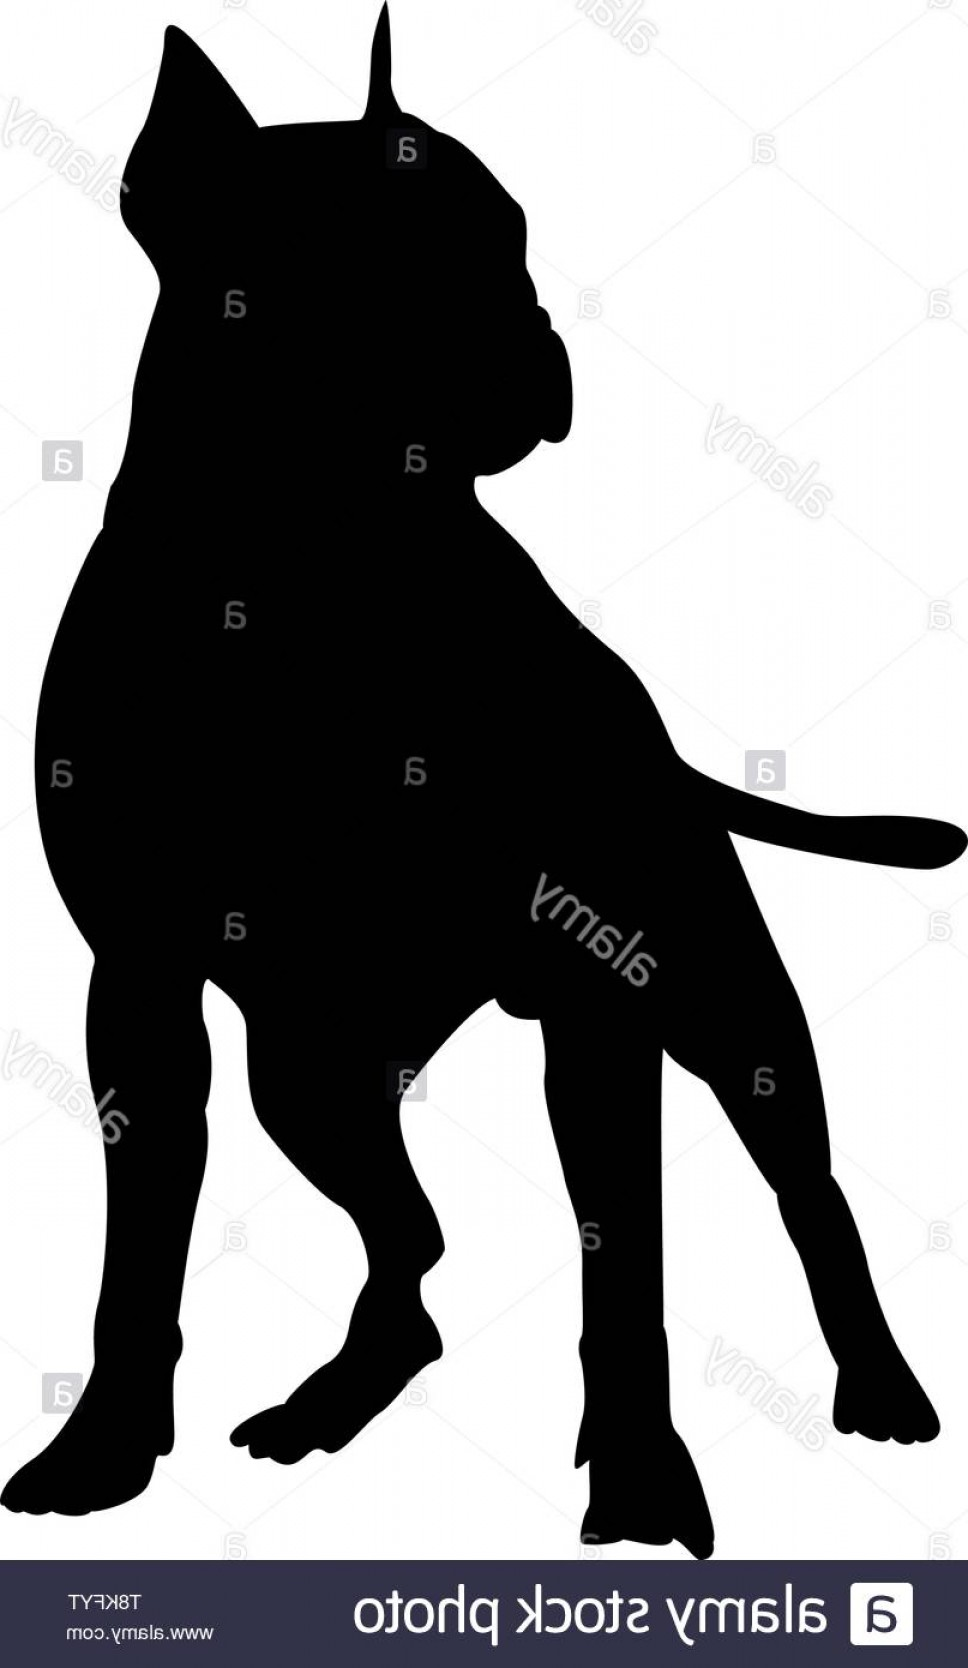 Pit Silhouette Vector: Pit Bull Terrier Dog Silhouette Smooth Vector Illustration Image